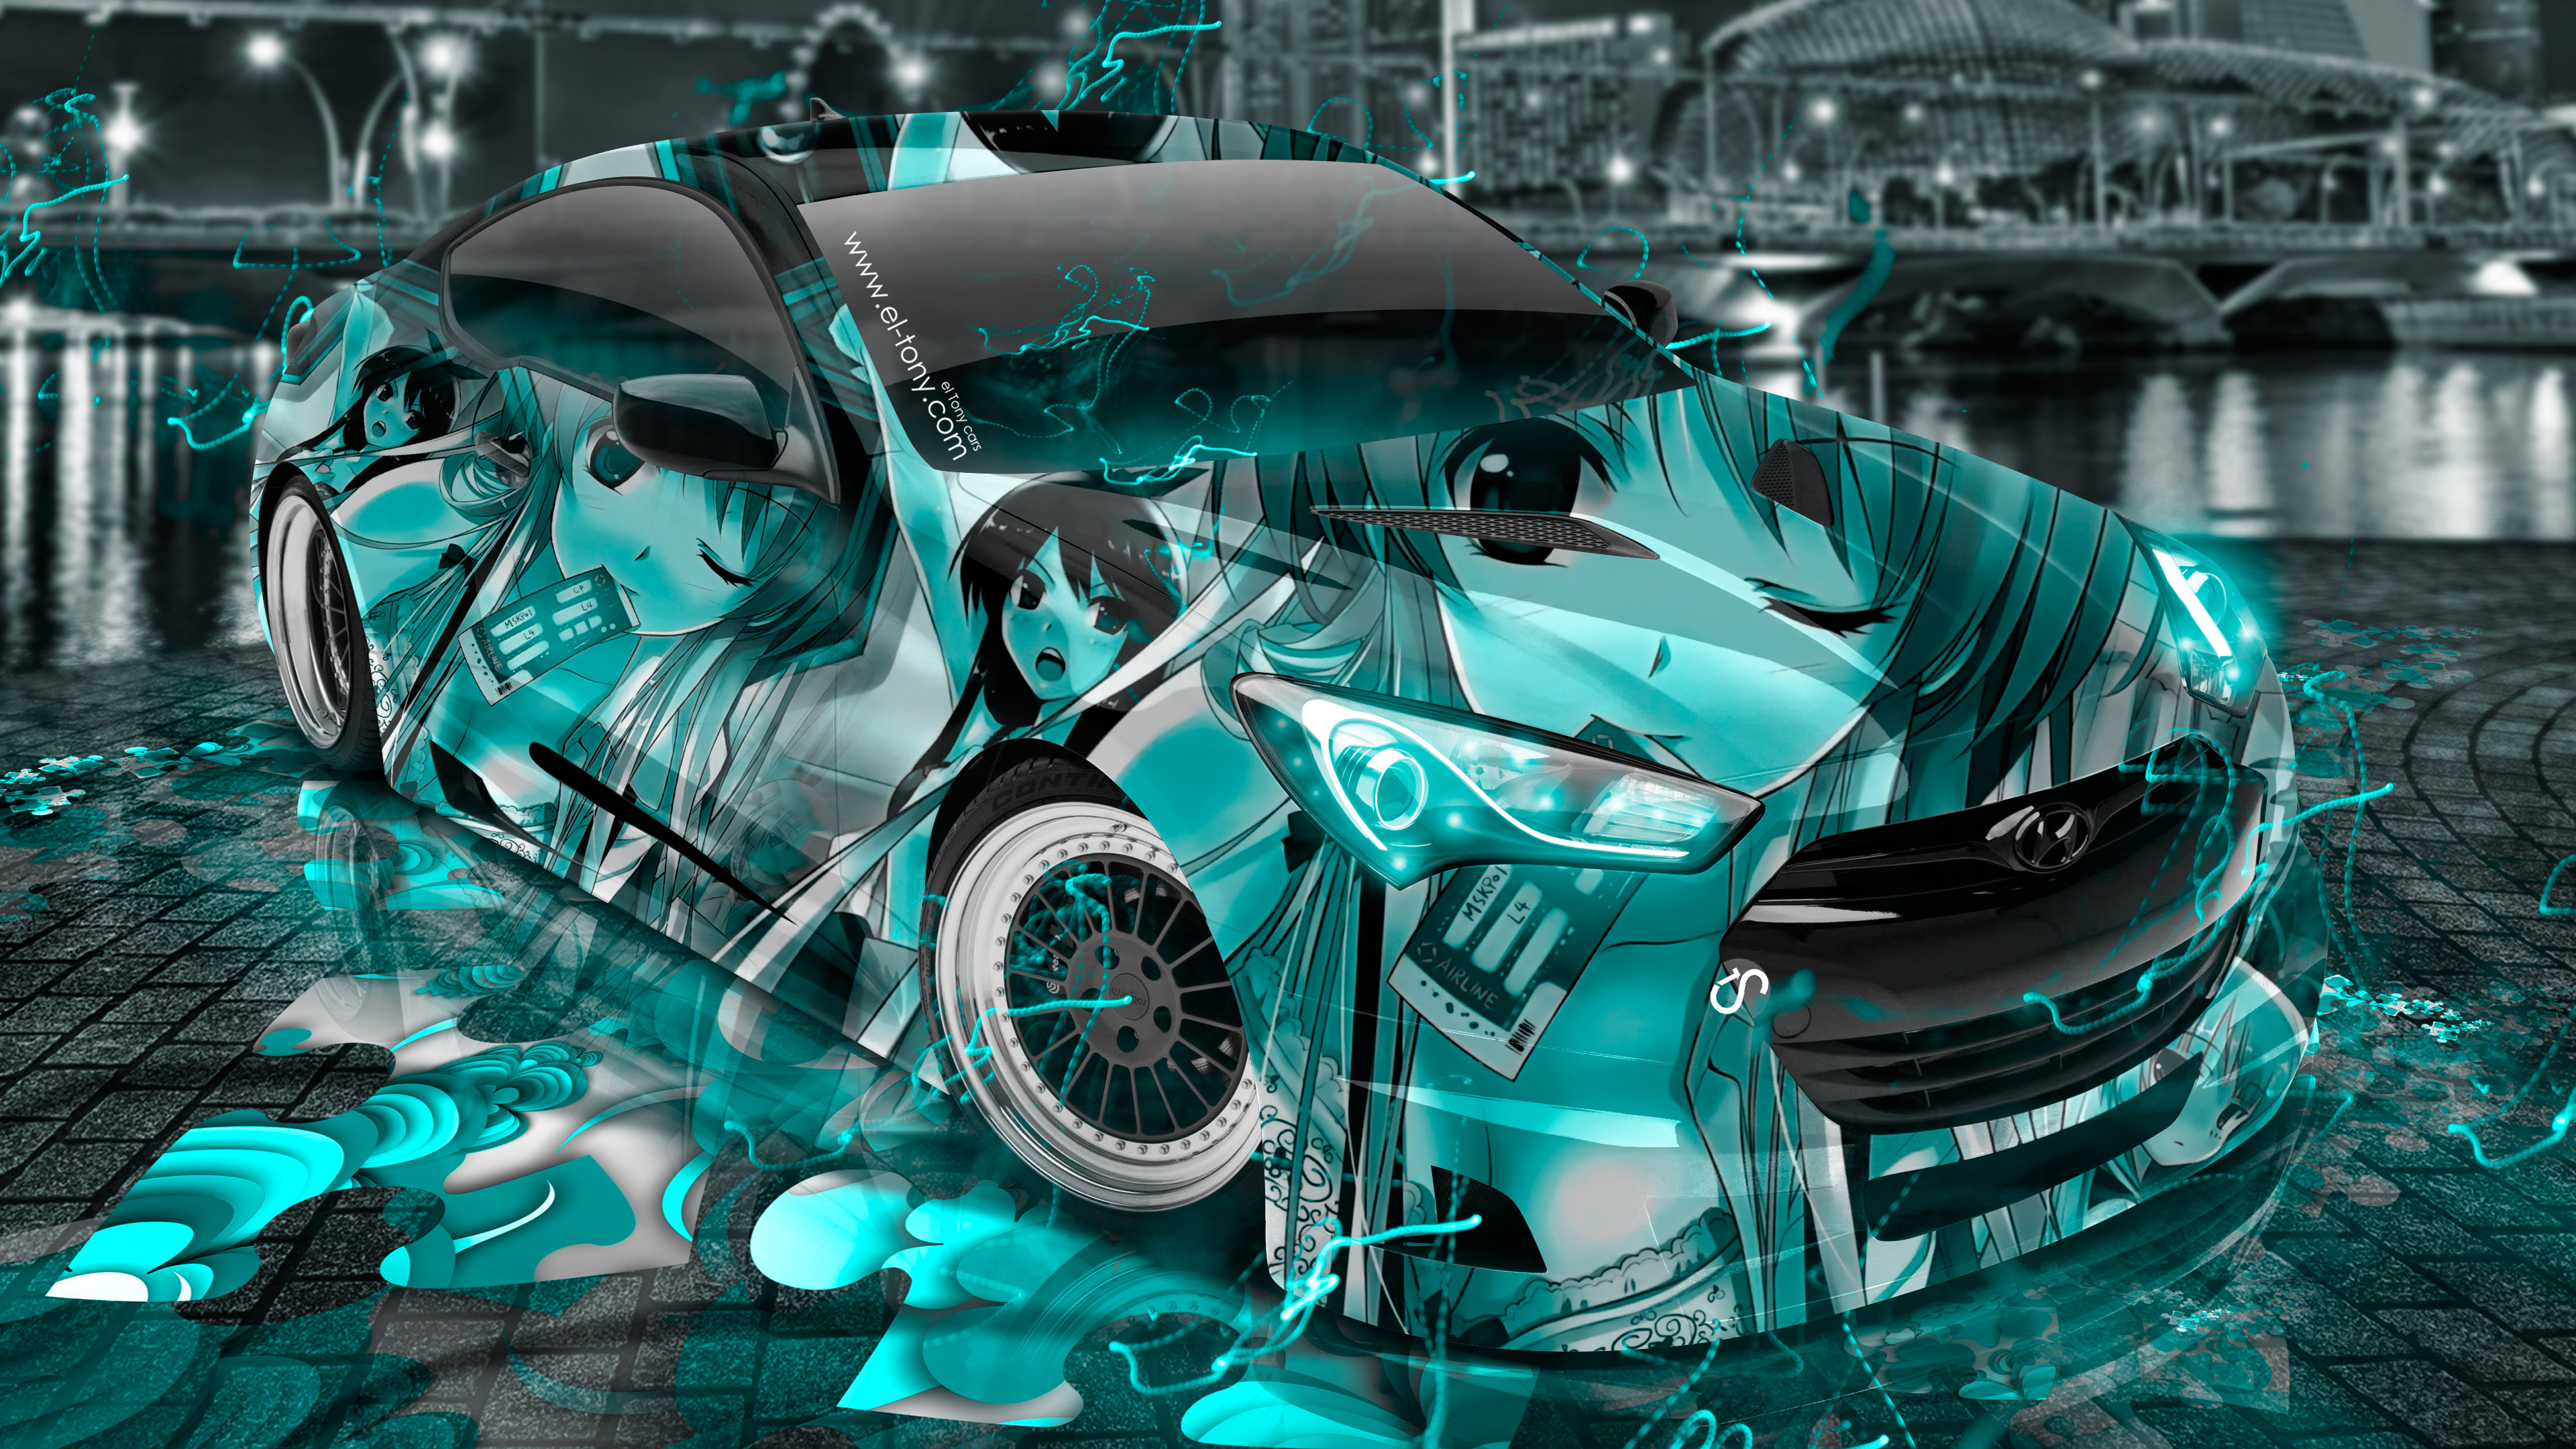 Hyundai Genesis Coupe Anime Girl Aerography City Energy